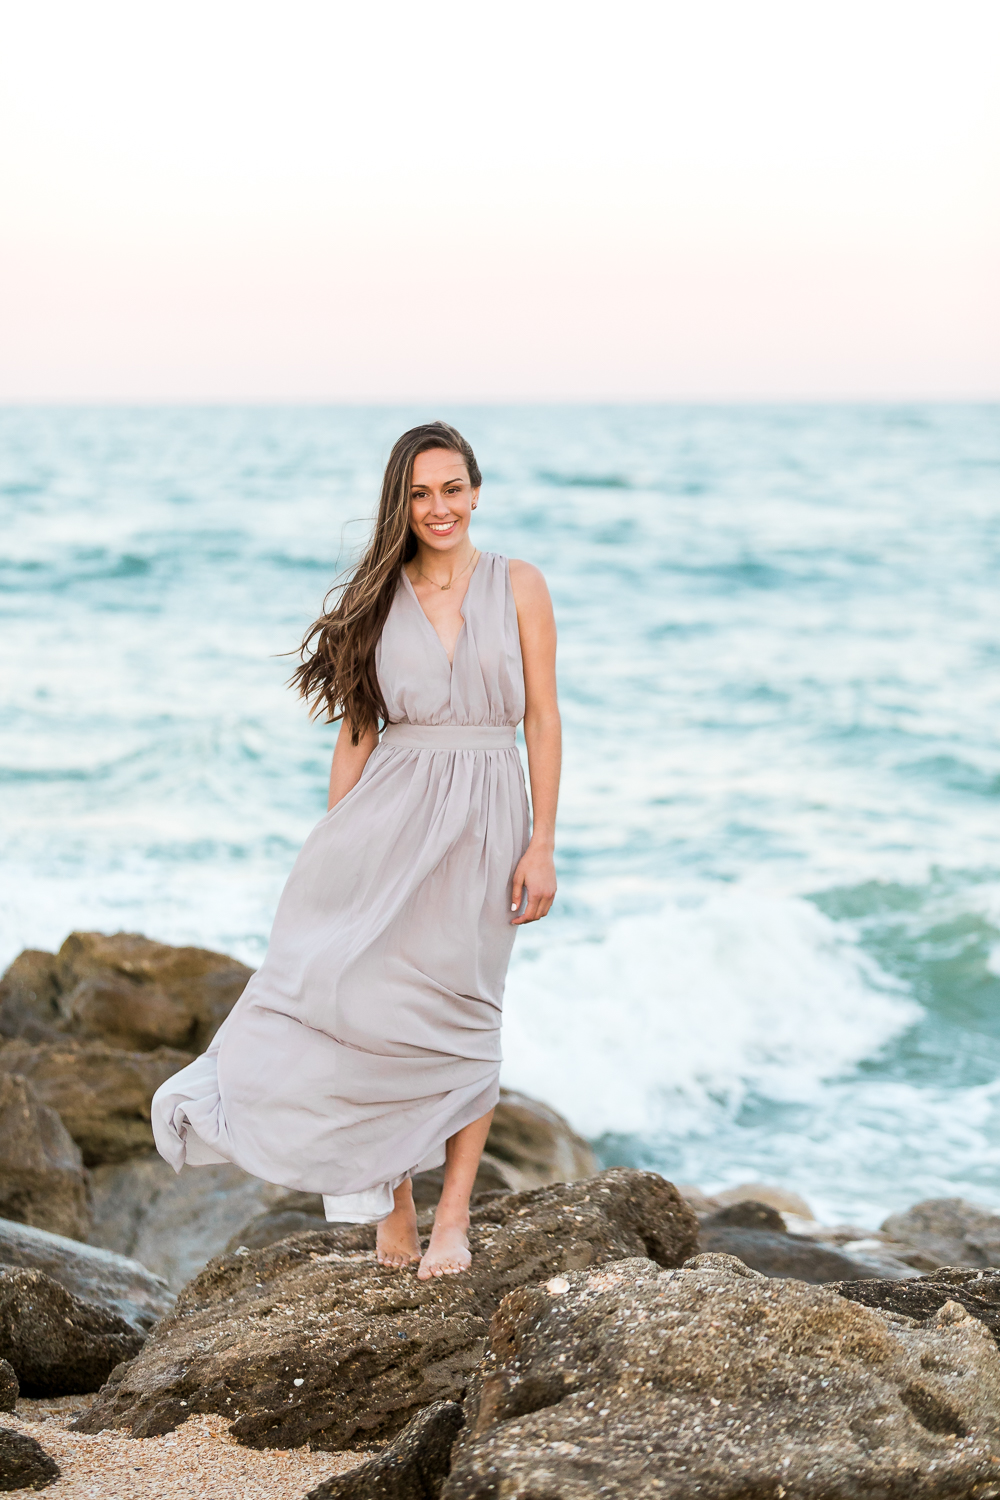 Picture and posing ideas for seniors at the beach during sunset